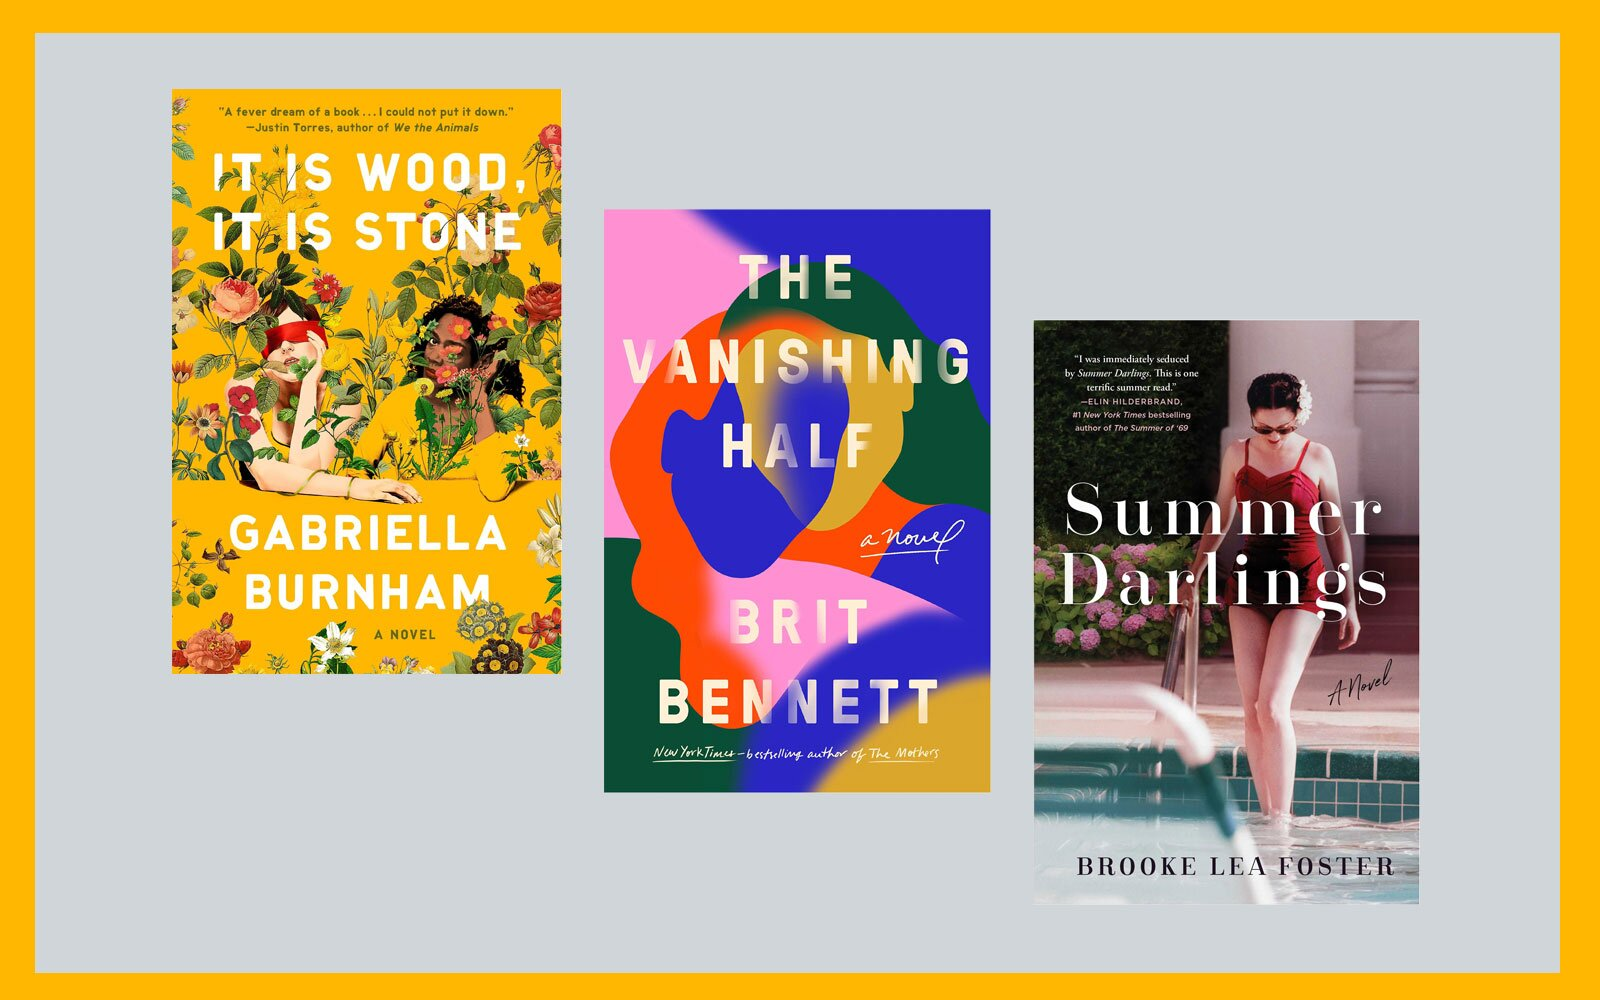 Best Summer Reads 2021 20 Best Summer Books to Have on Your 2020 Reading List | Travel +